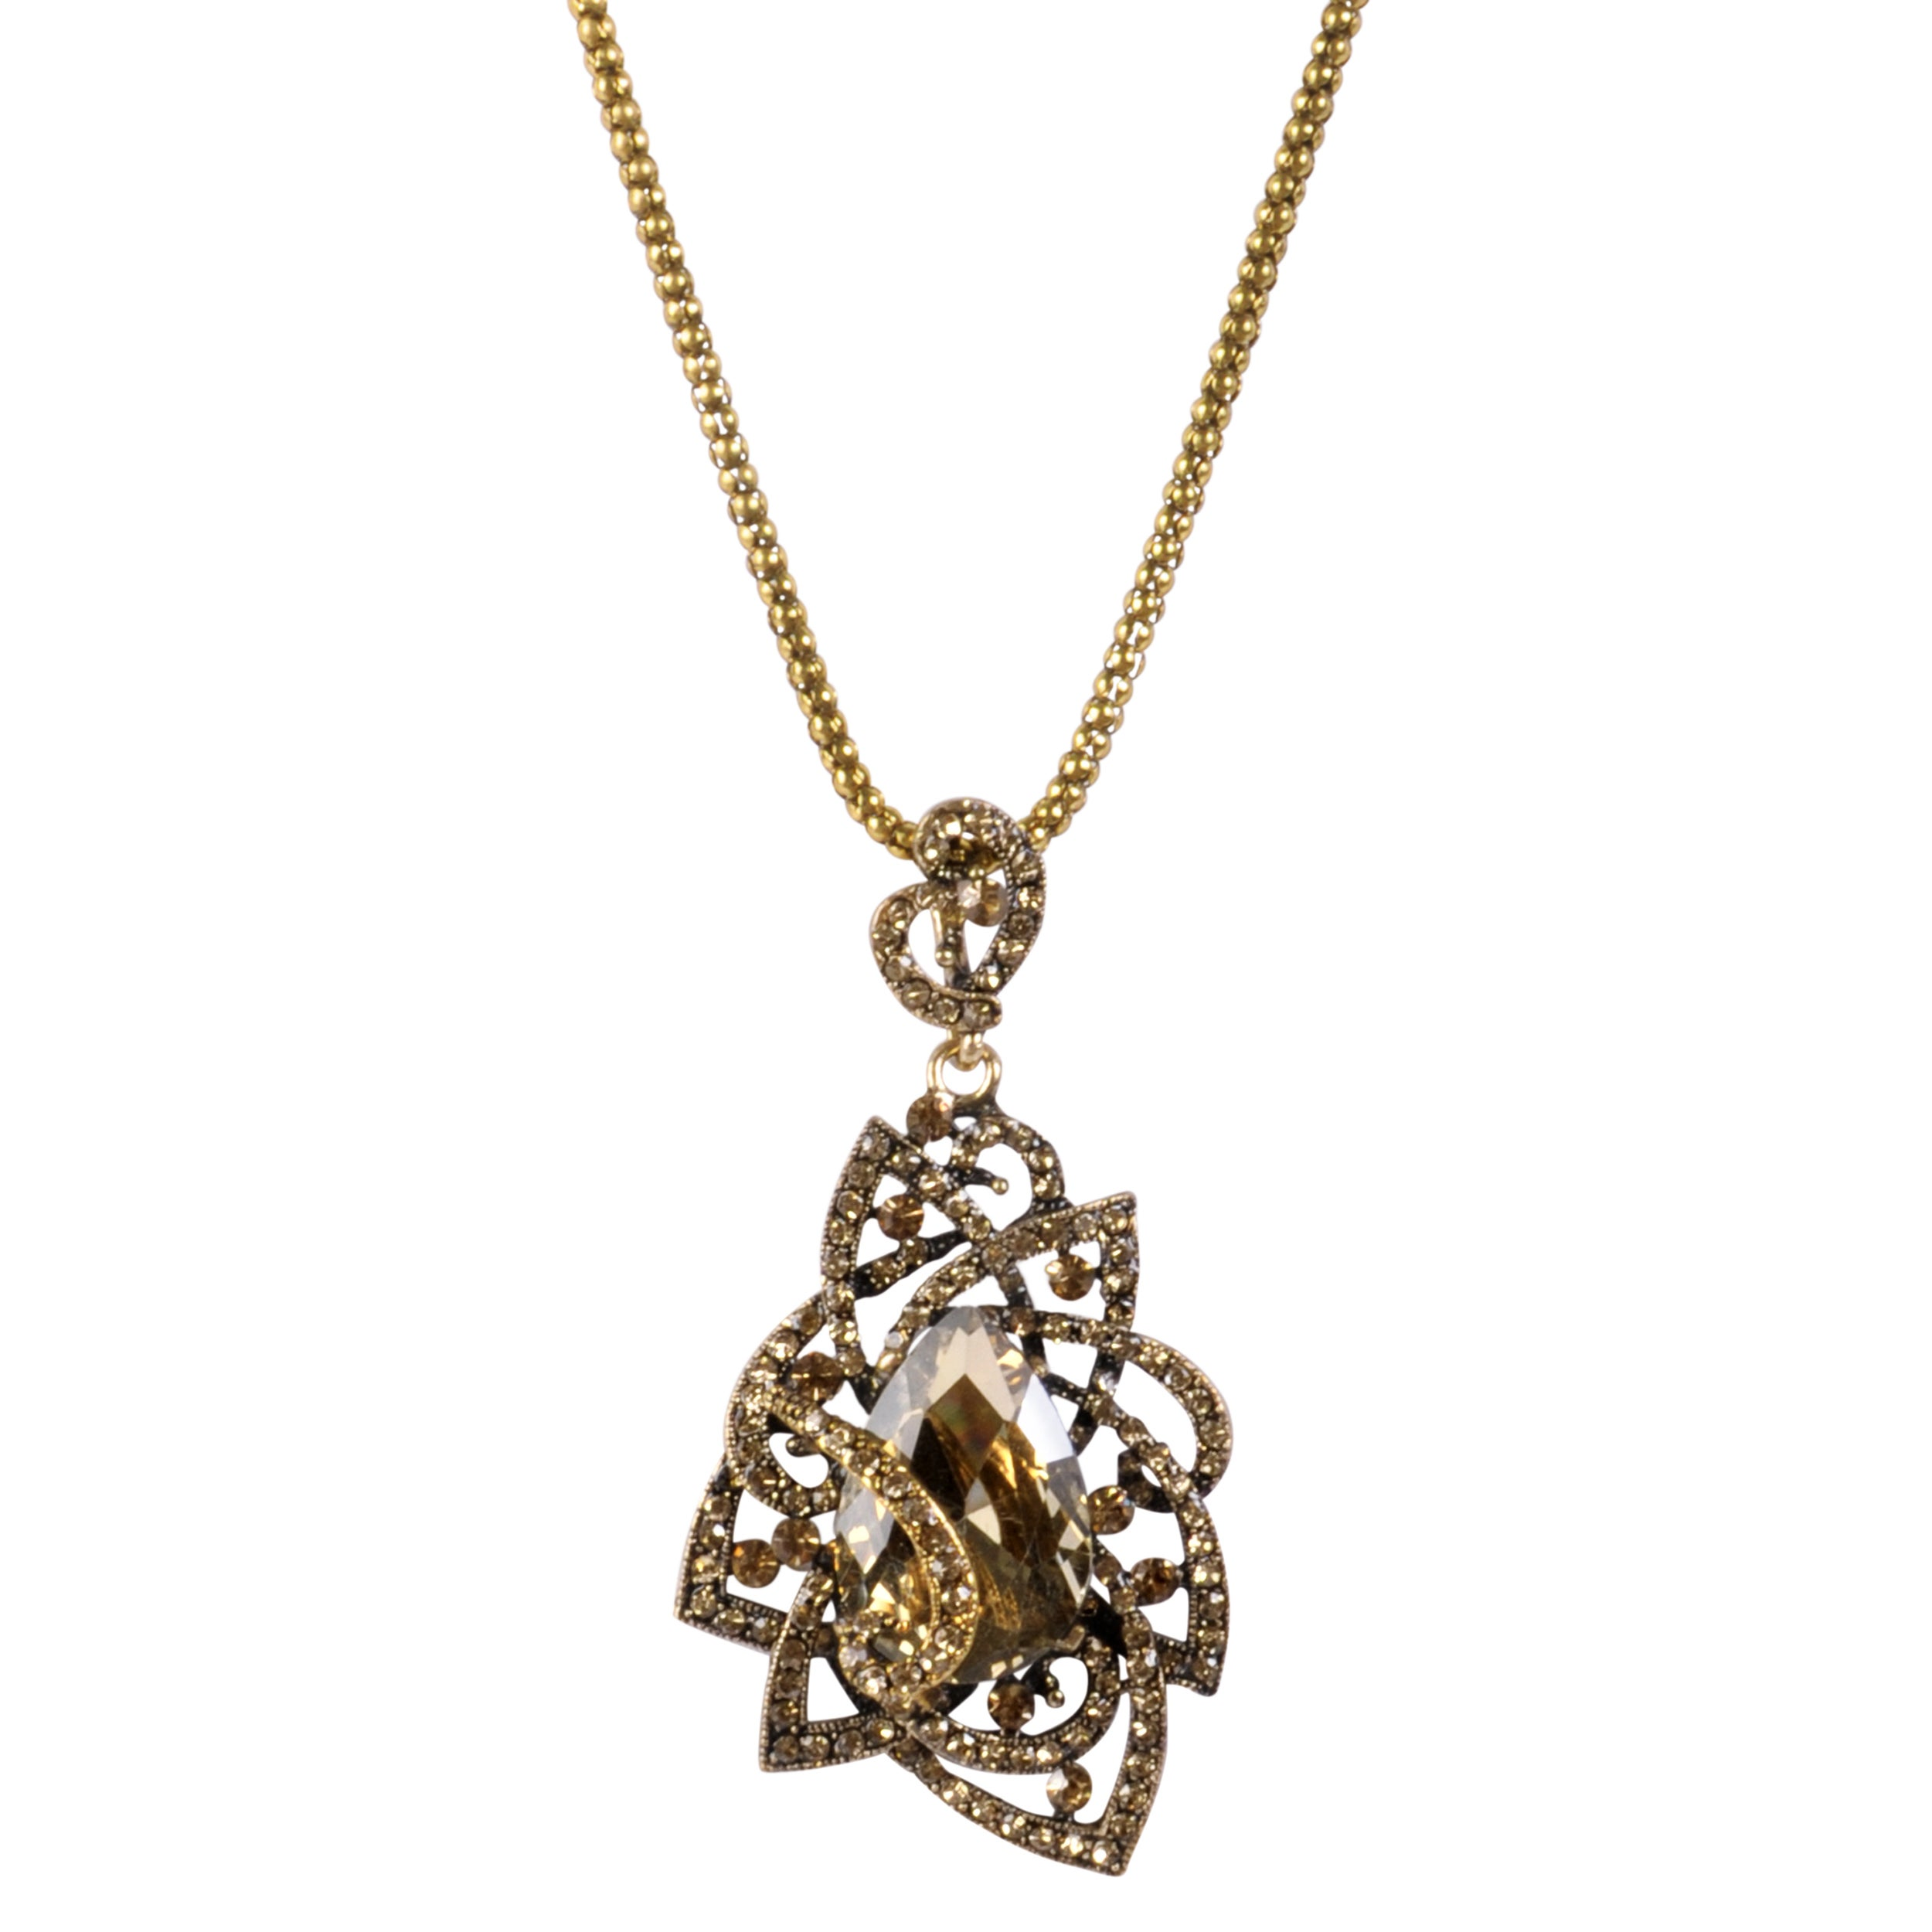 Journee Collection Goldtone Base Metal Glass Stone Statement Necklace